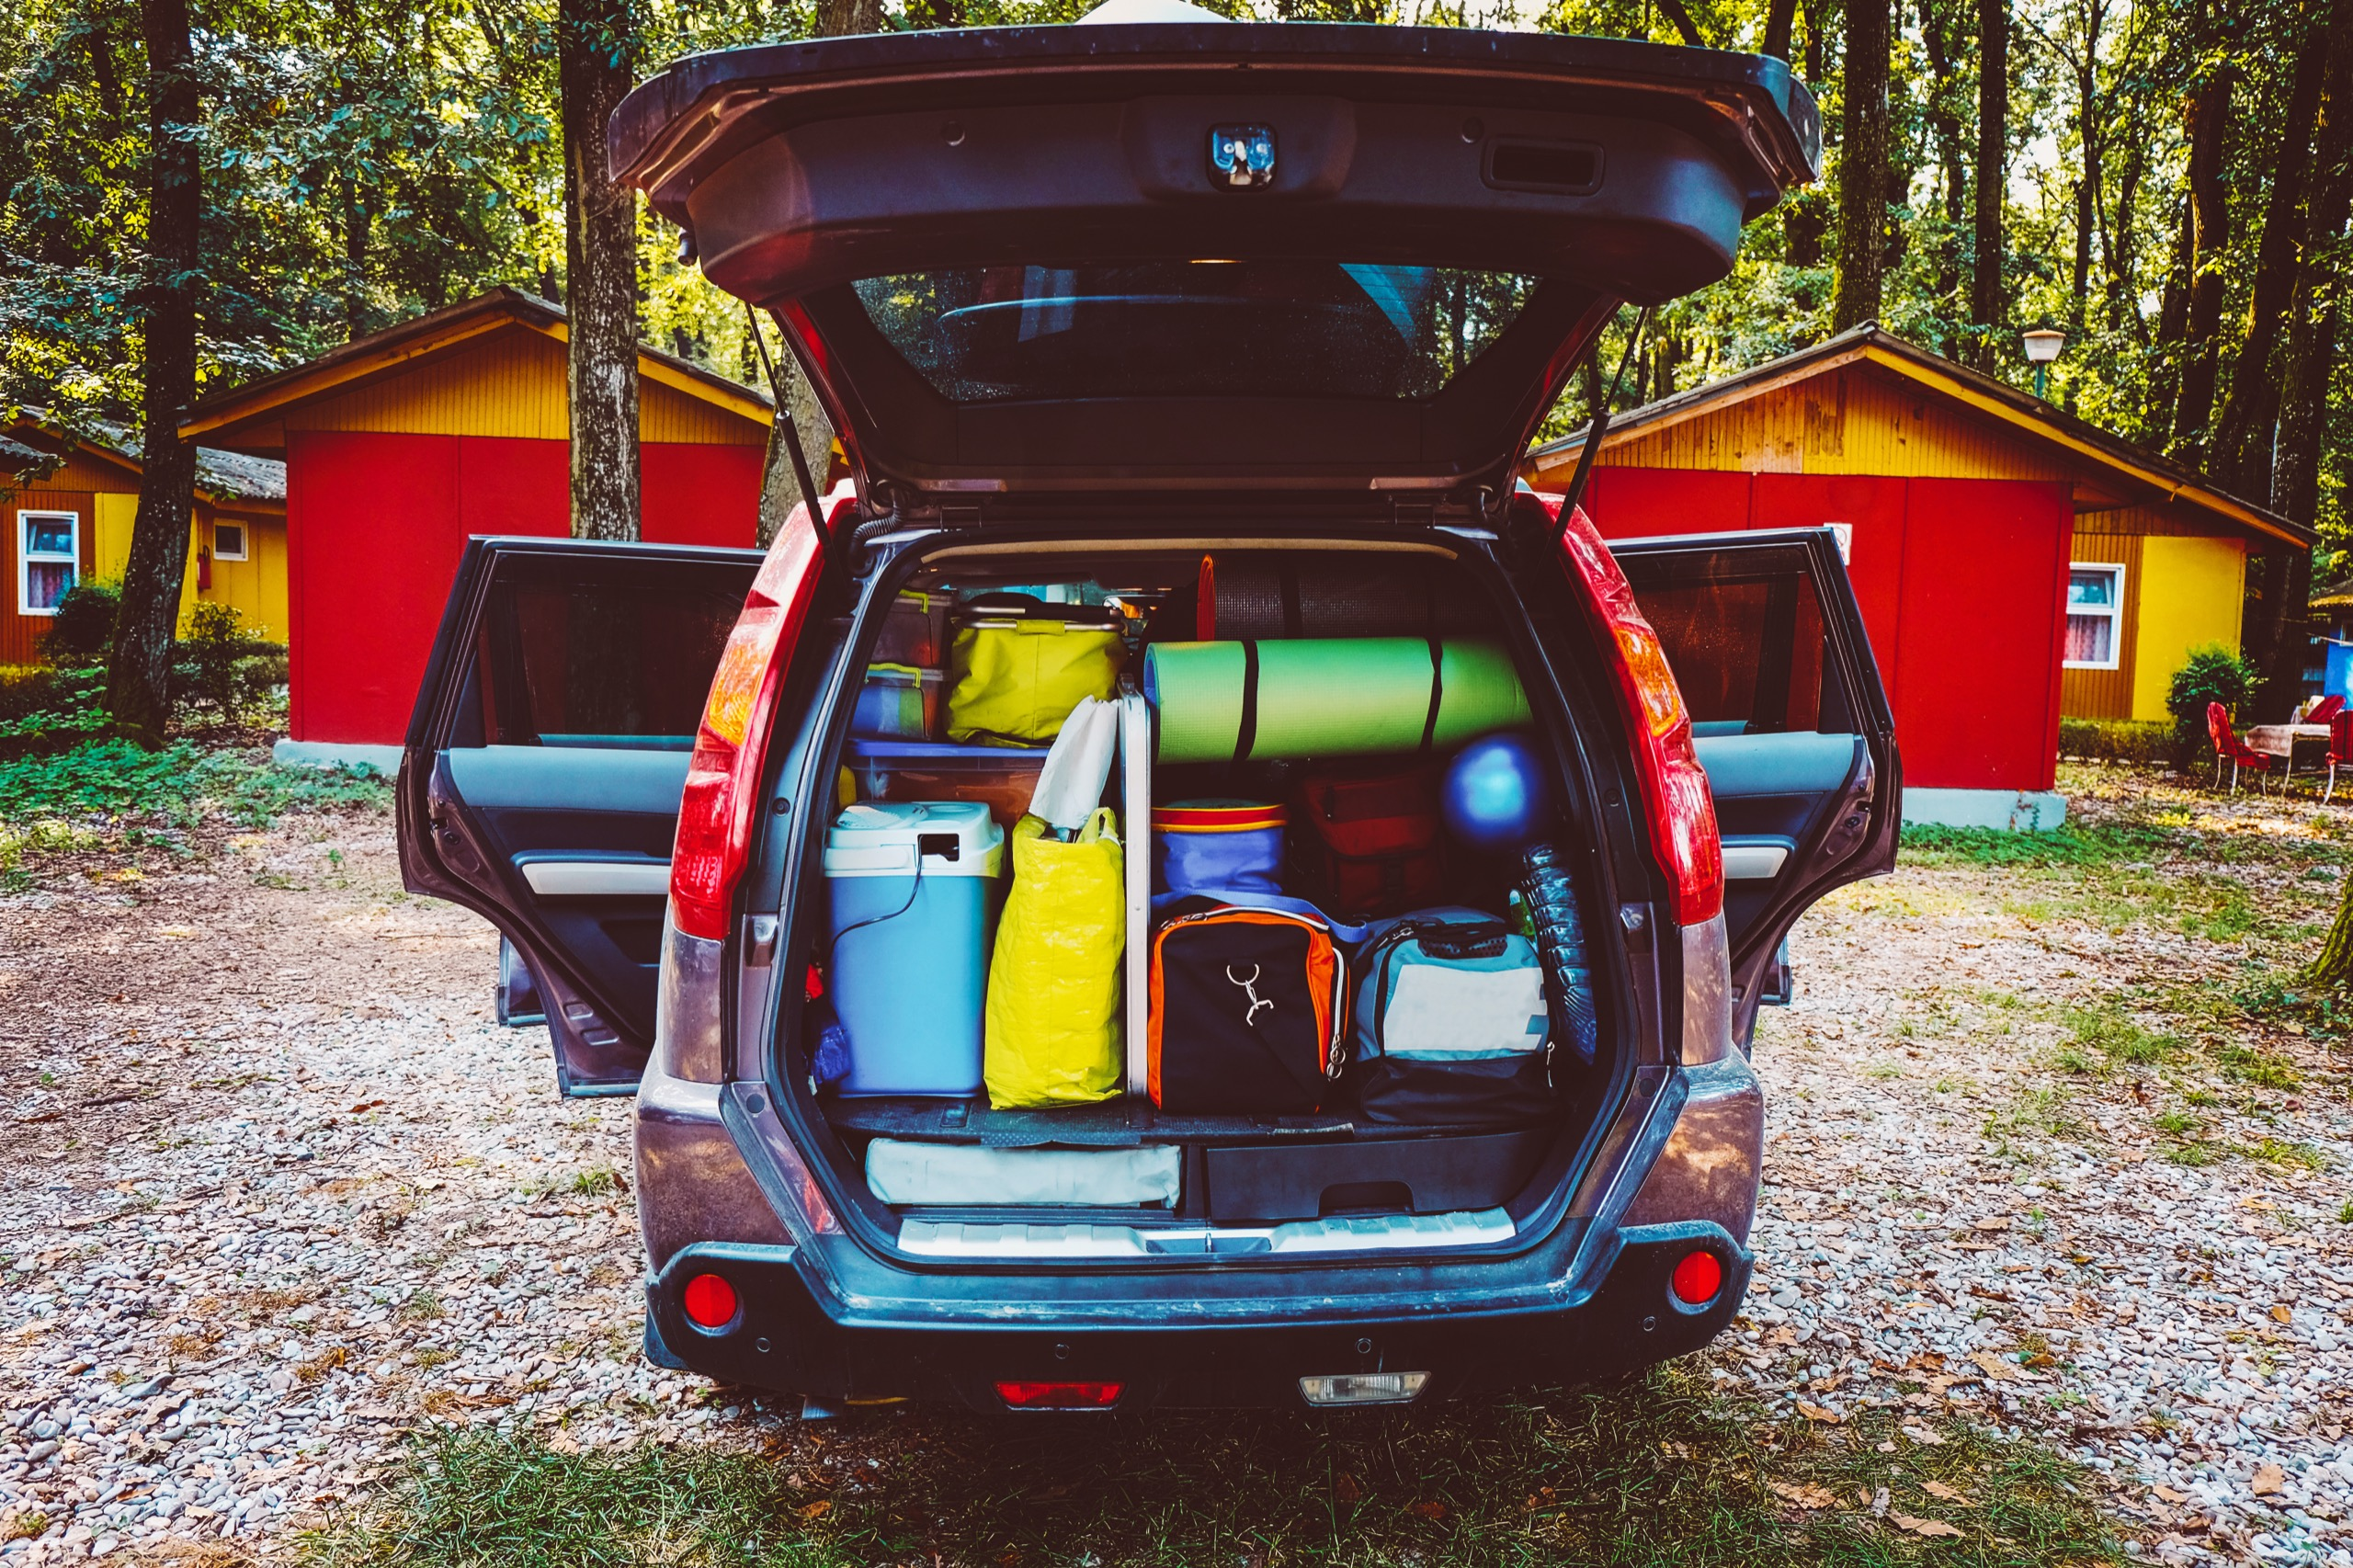 A sport utility vehicle/car is expertly loaded at a wooded campground. The suitcases, bags, and coolers are ready to be unloaded.